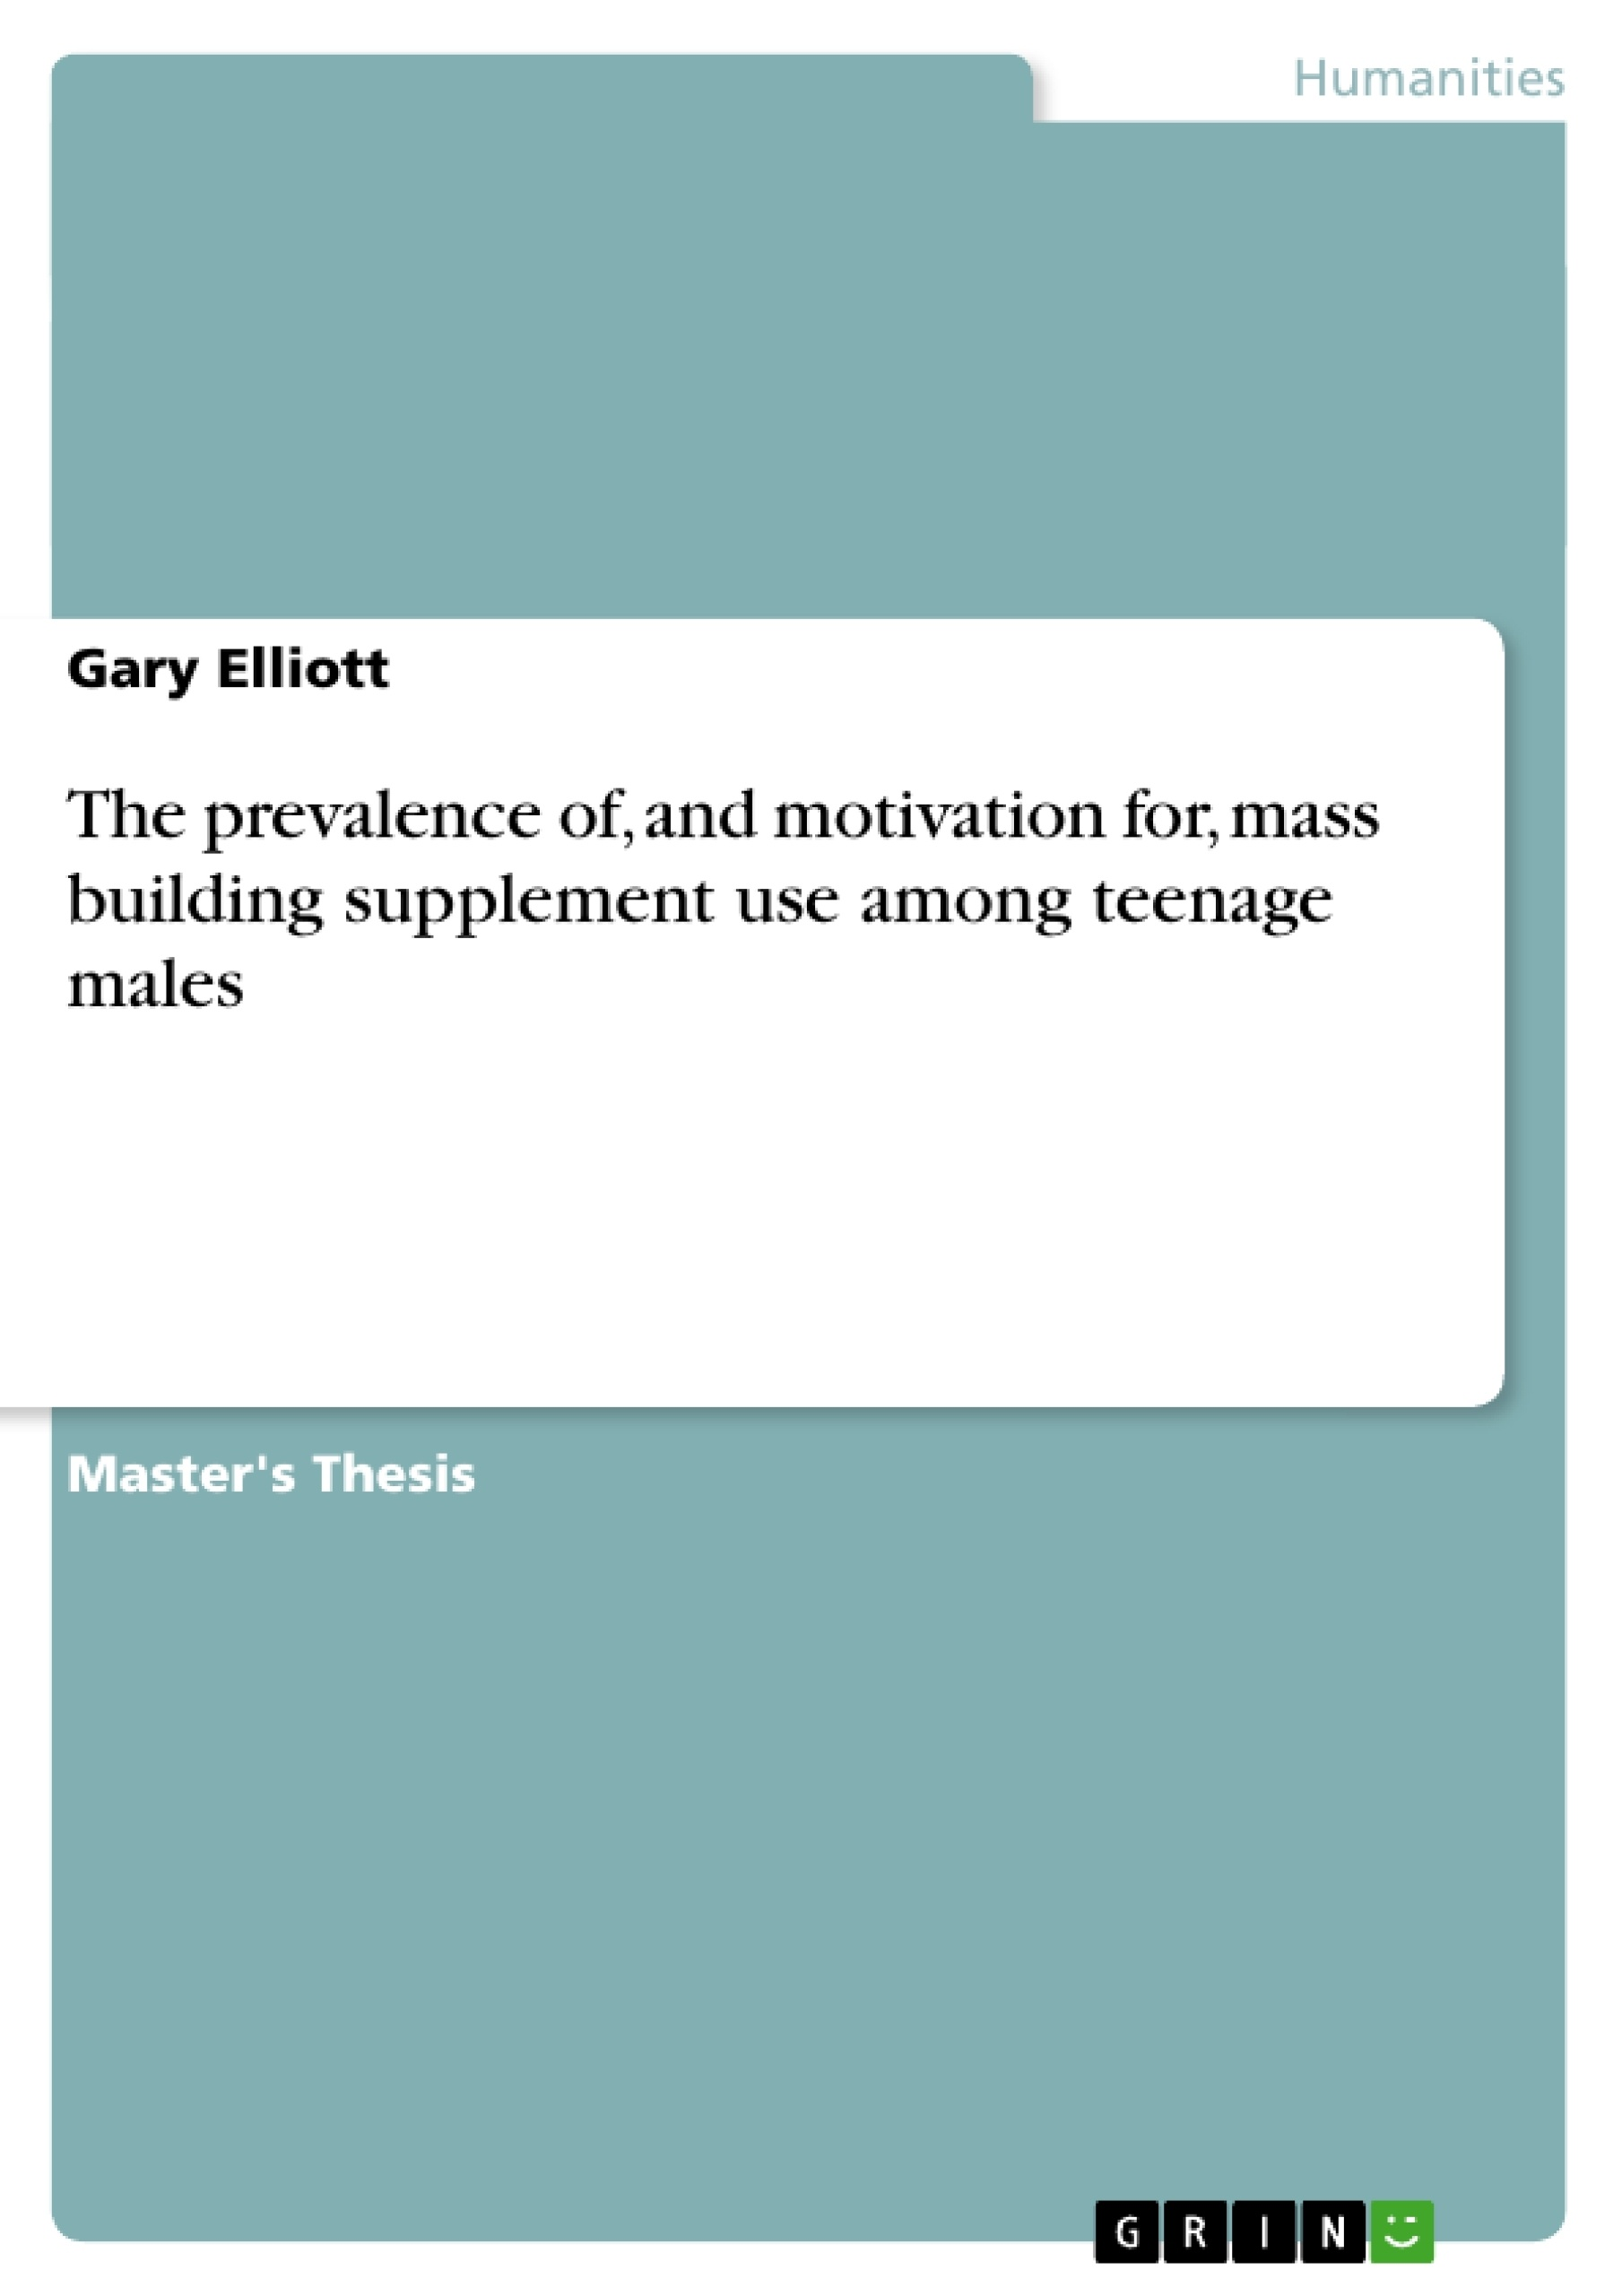 Title: The prevalence of, and motivation for, mass building supplement use among teenage males